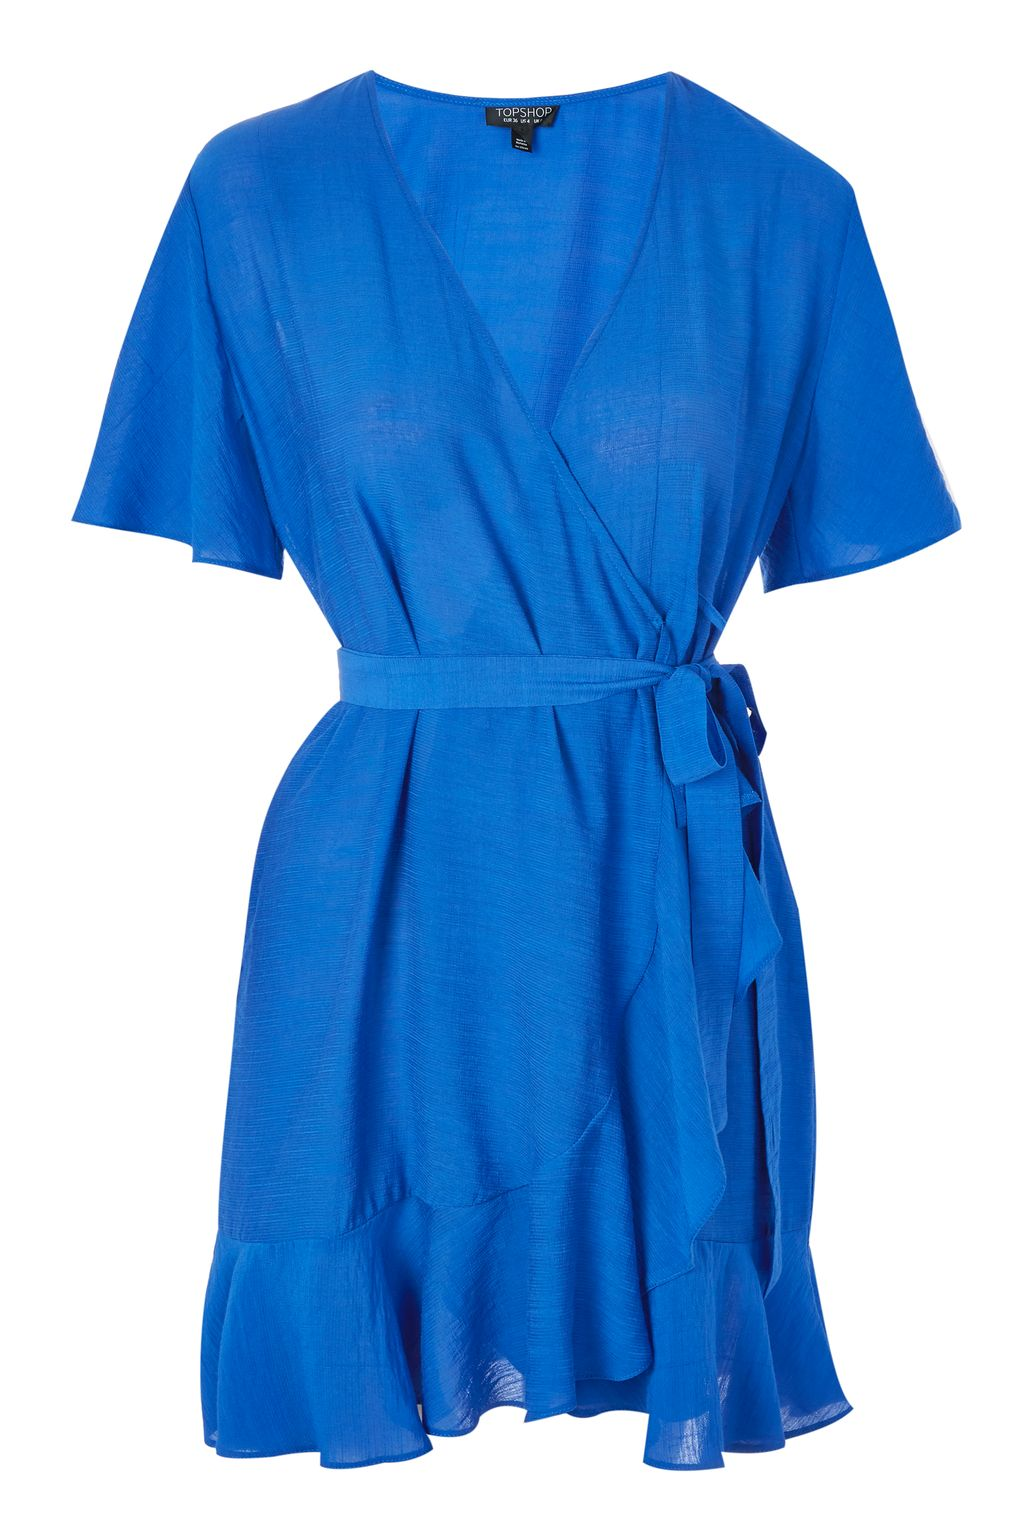 Top 15 summer dresses to rock in the sun